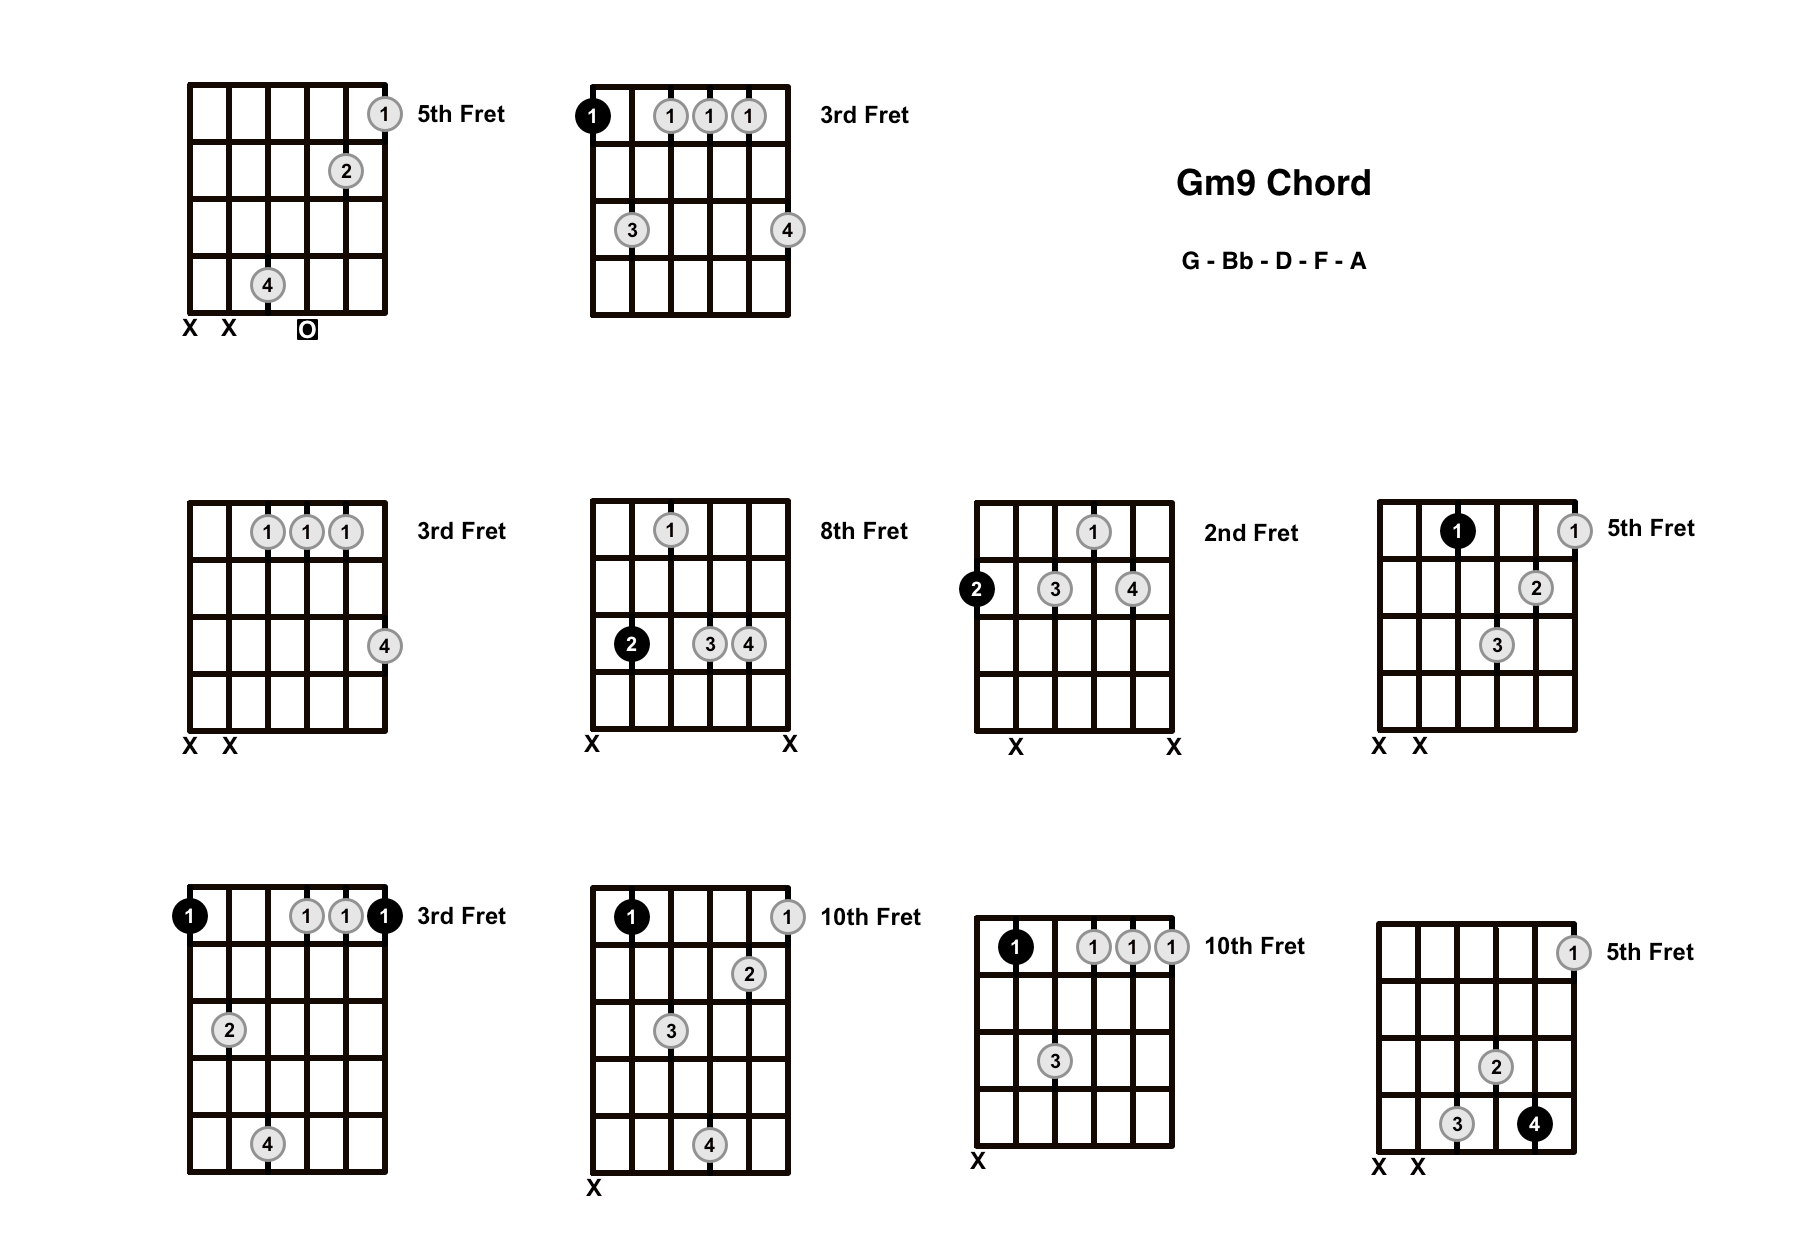 Gm9 Chord On The Guitar (G Minor 9) – Diagrams, Finger Positions and Theory